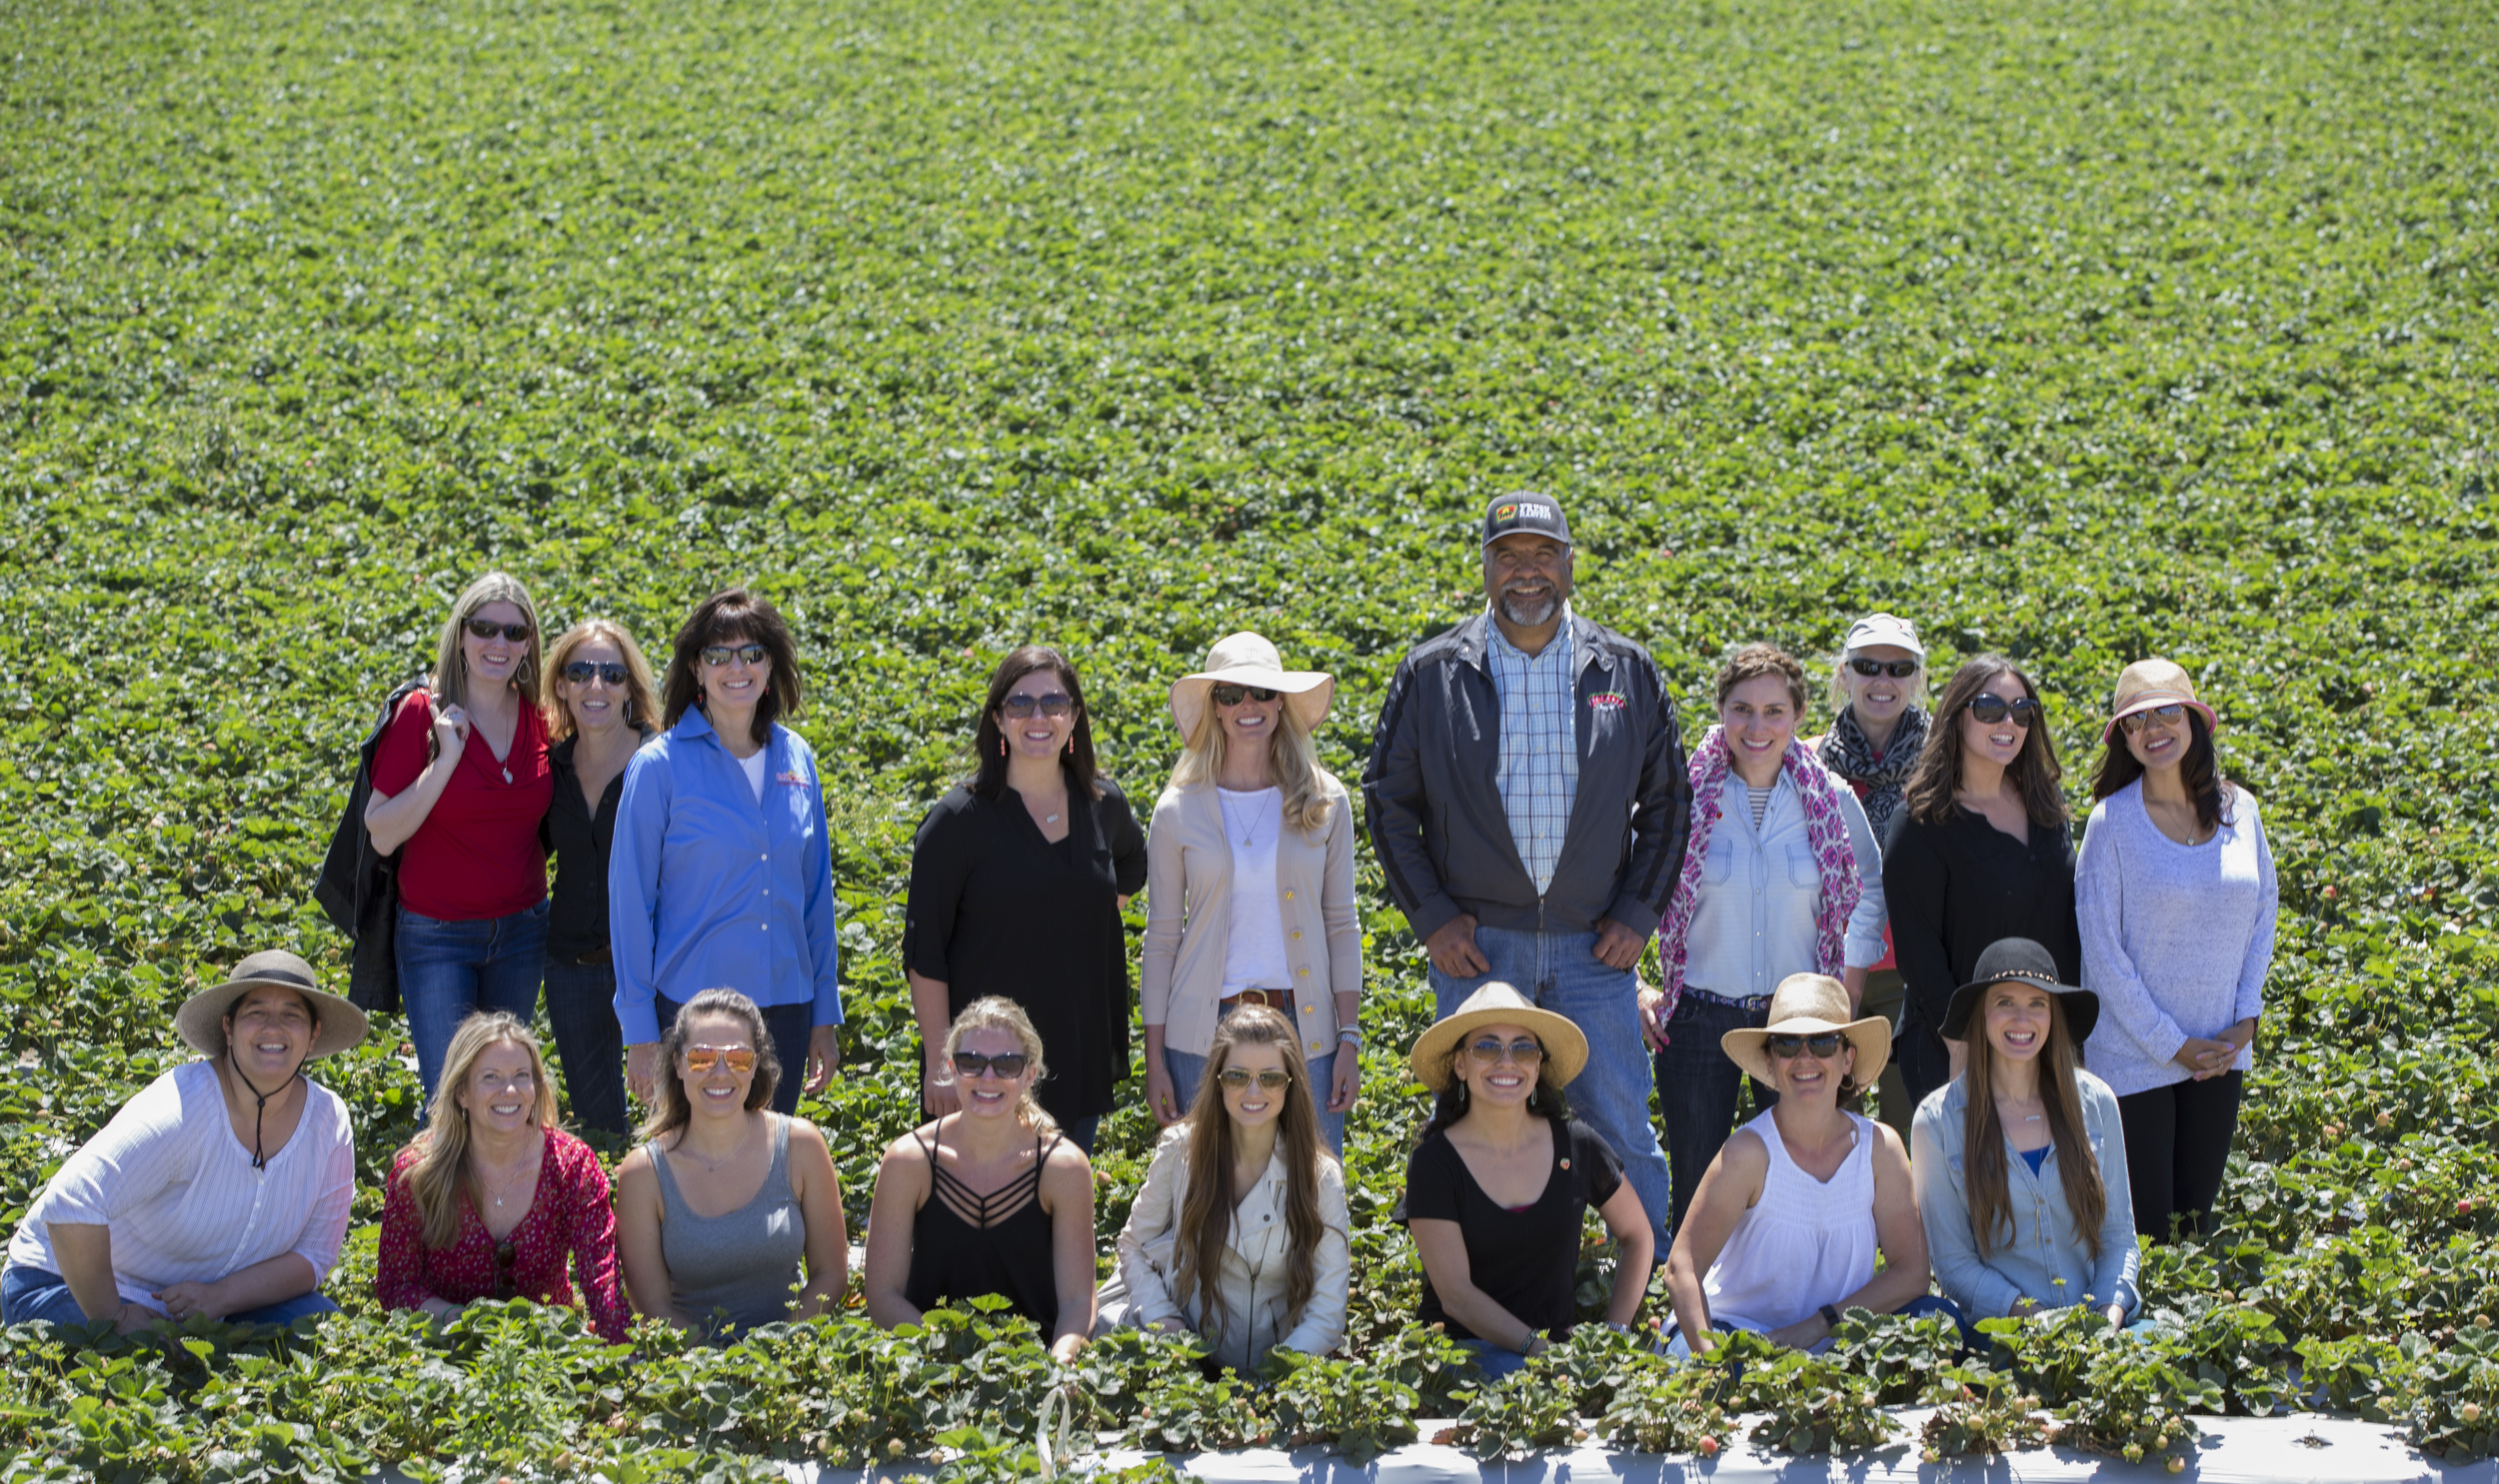 Our fantastic group of CA Strawberry Commission employees and blogger ambassadors at Jesus Alvarado's Fresalva Berry farm. Photo by  Robert Durell Photography